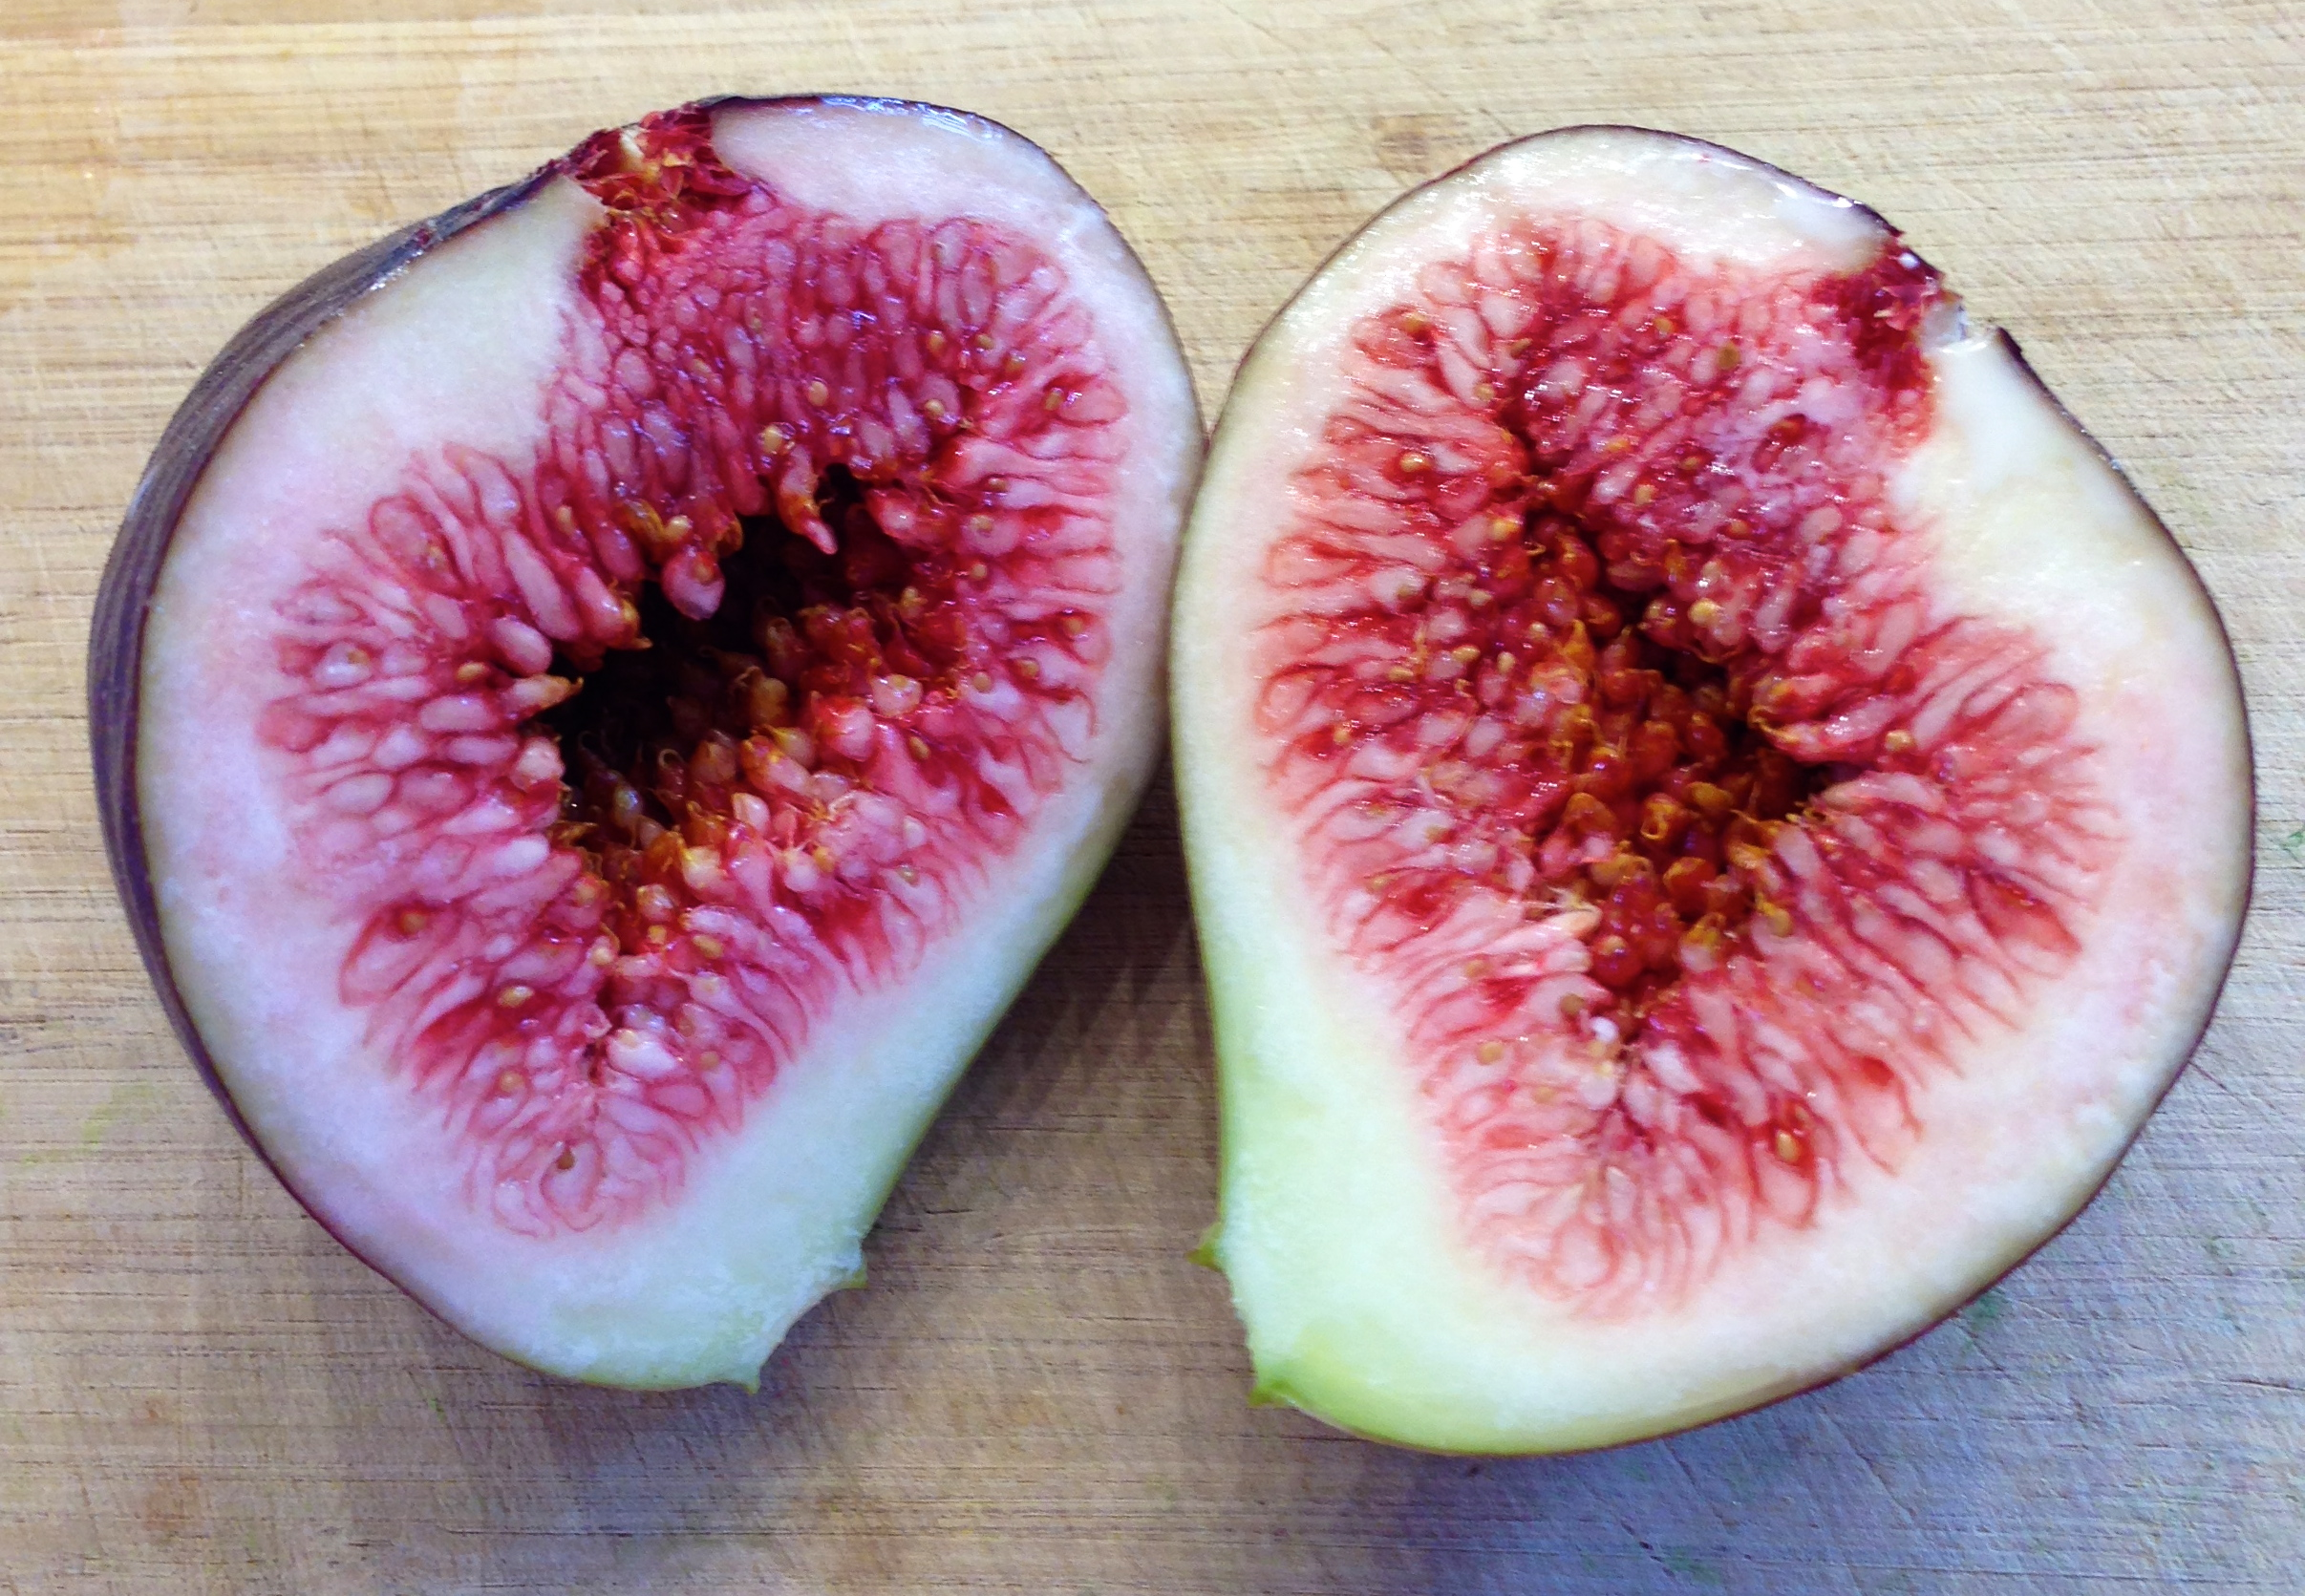 Figs are healthy fruit for your cyclura reptile function Cooking turkey split in half